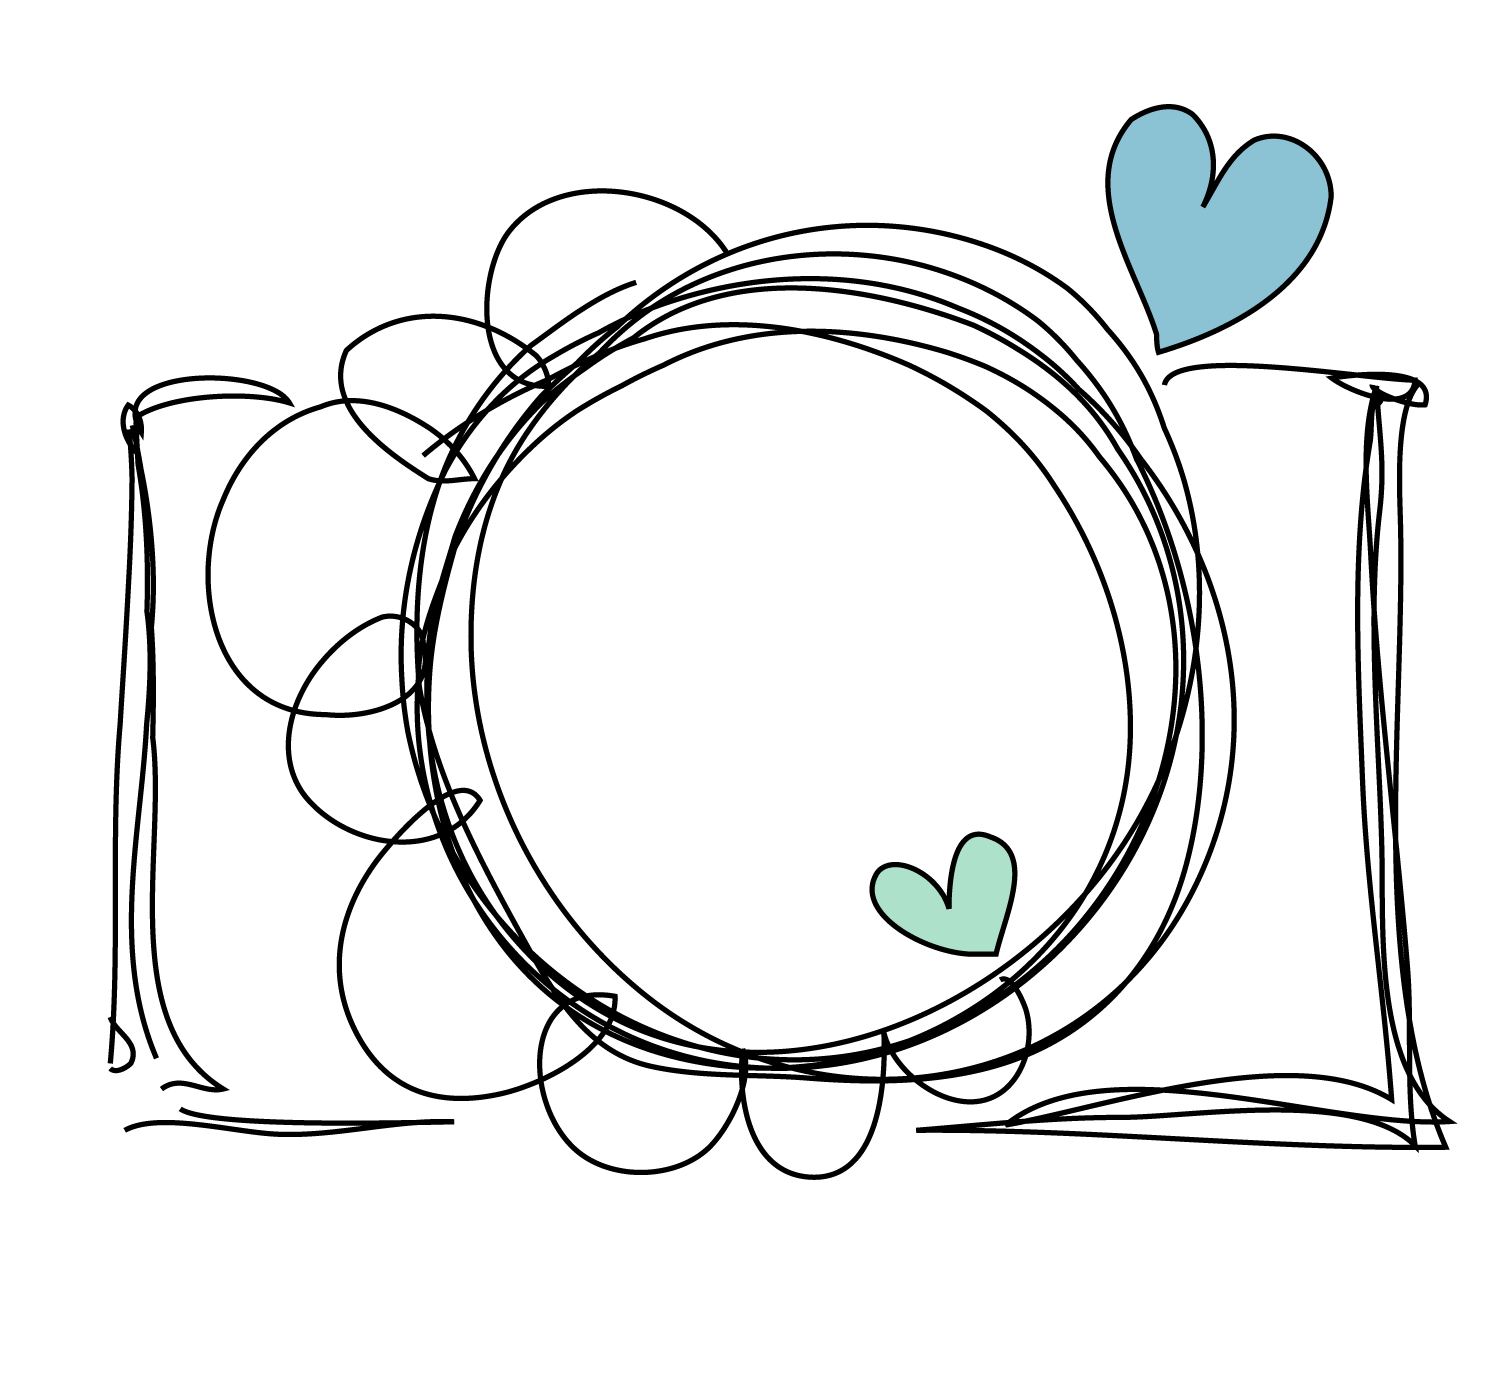 Circle Clipart Doodle Circle Doodle Transparent Free For